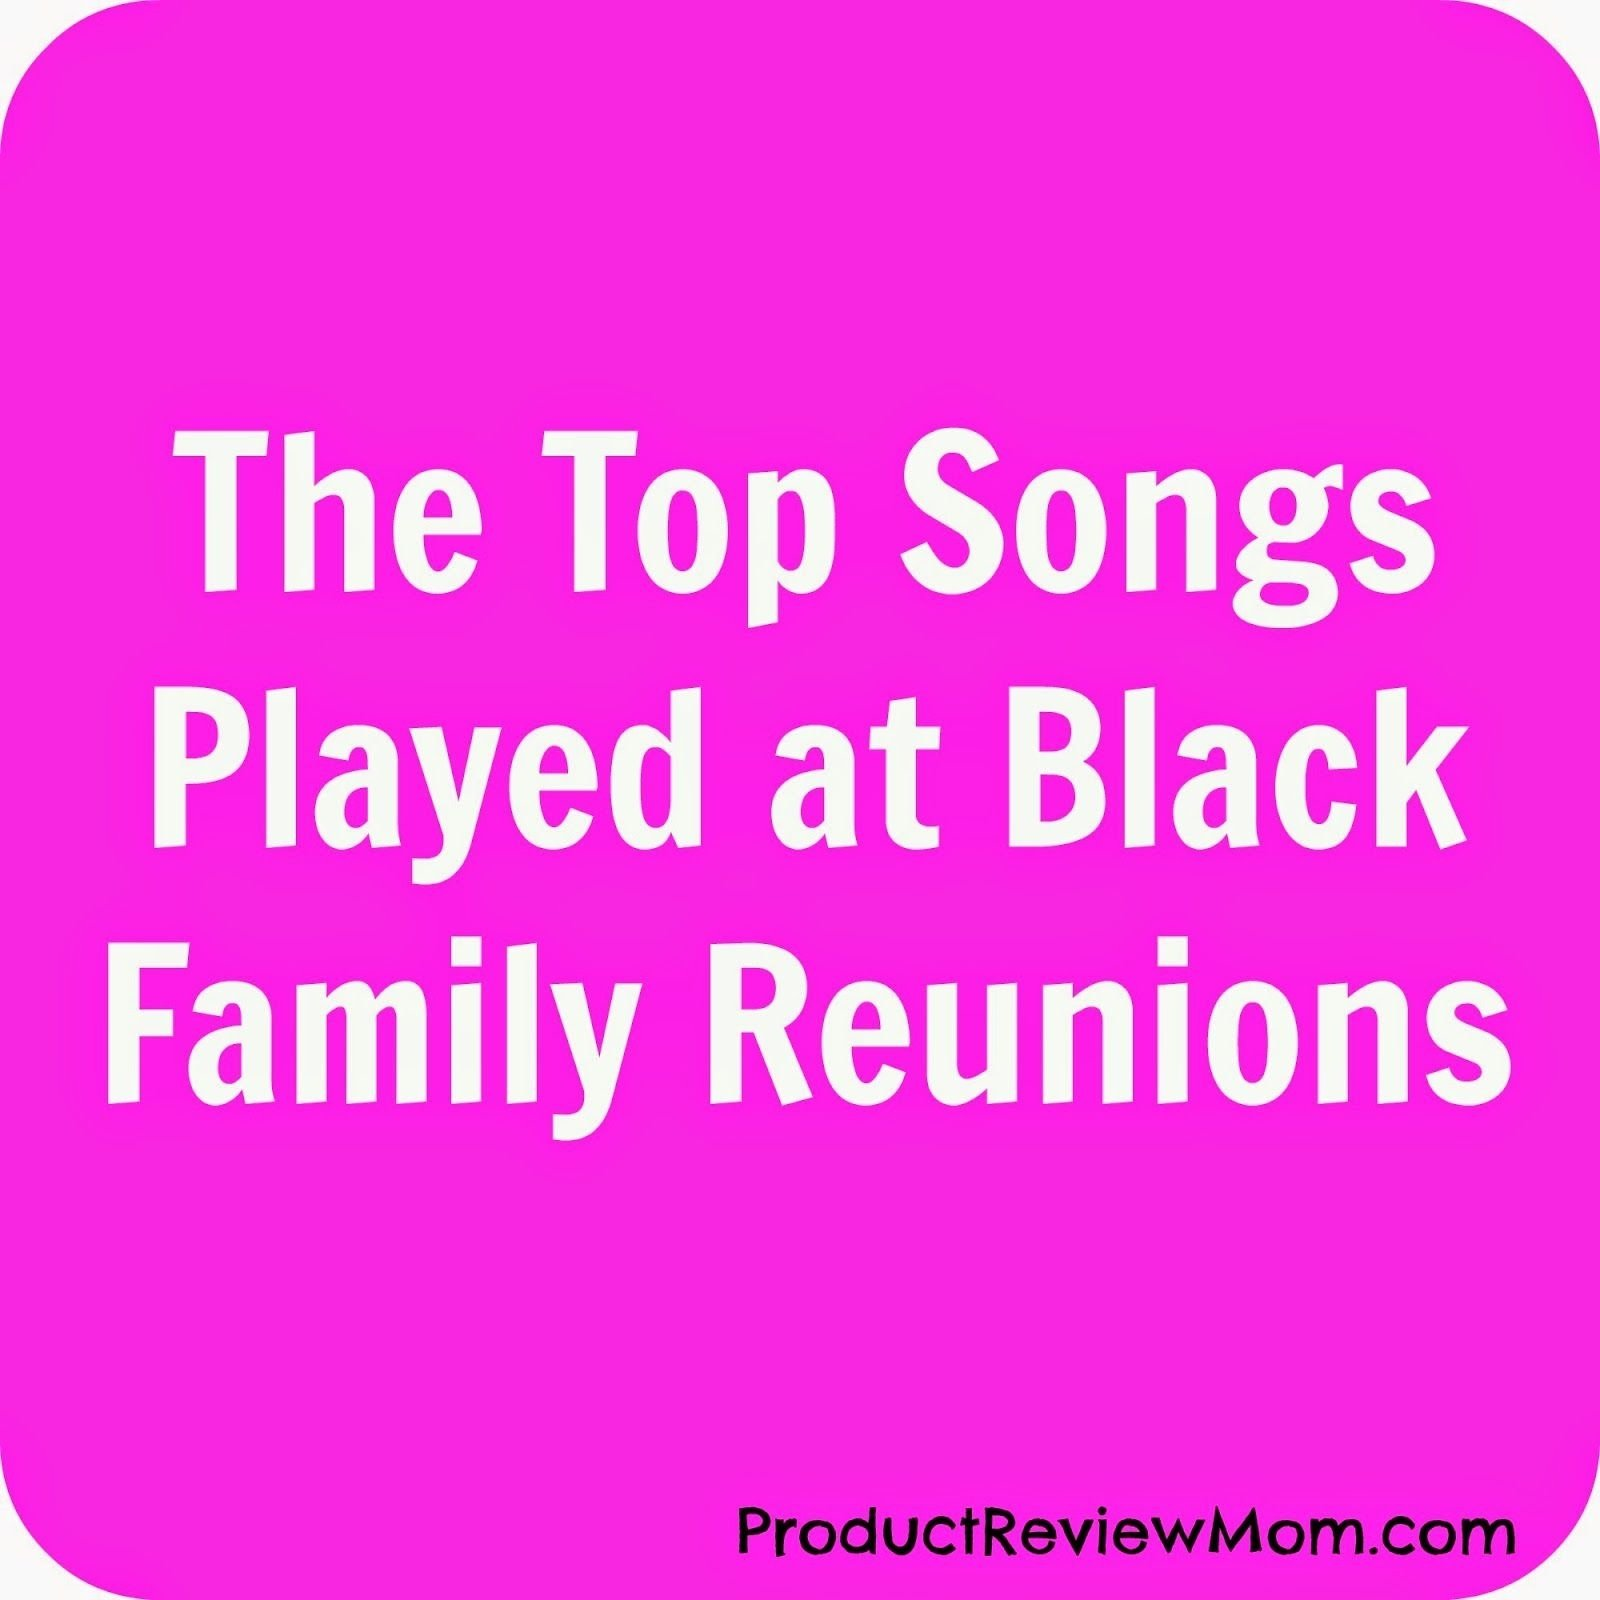 10 Fantastic African American Family Reunion Ideas the top songs played at black family reunions family reunions 2021